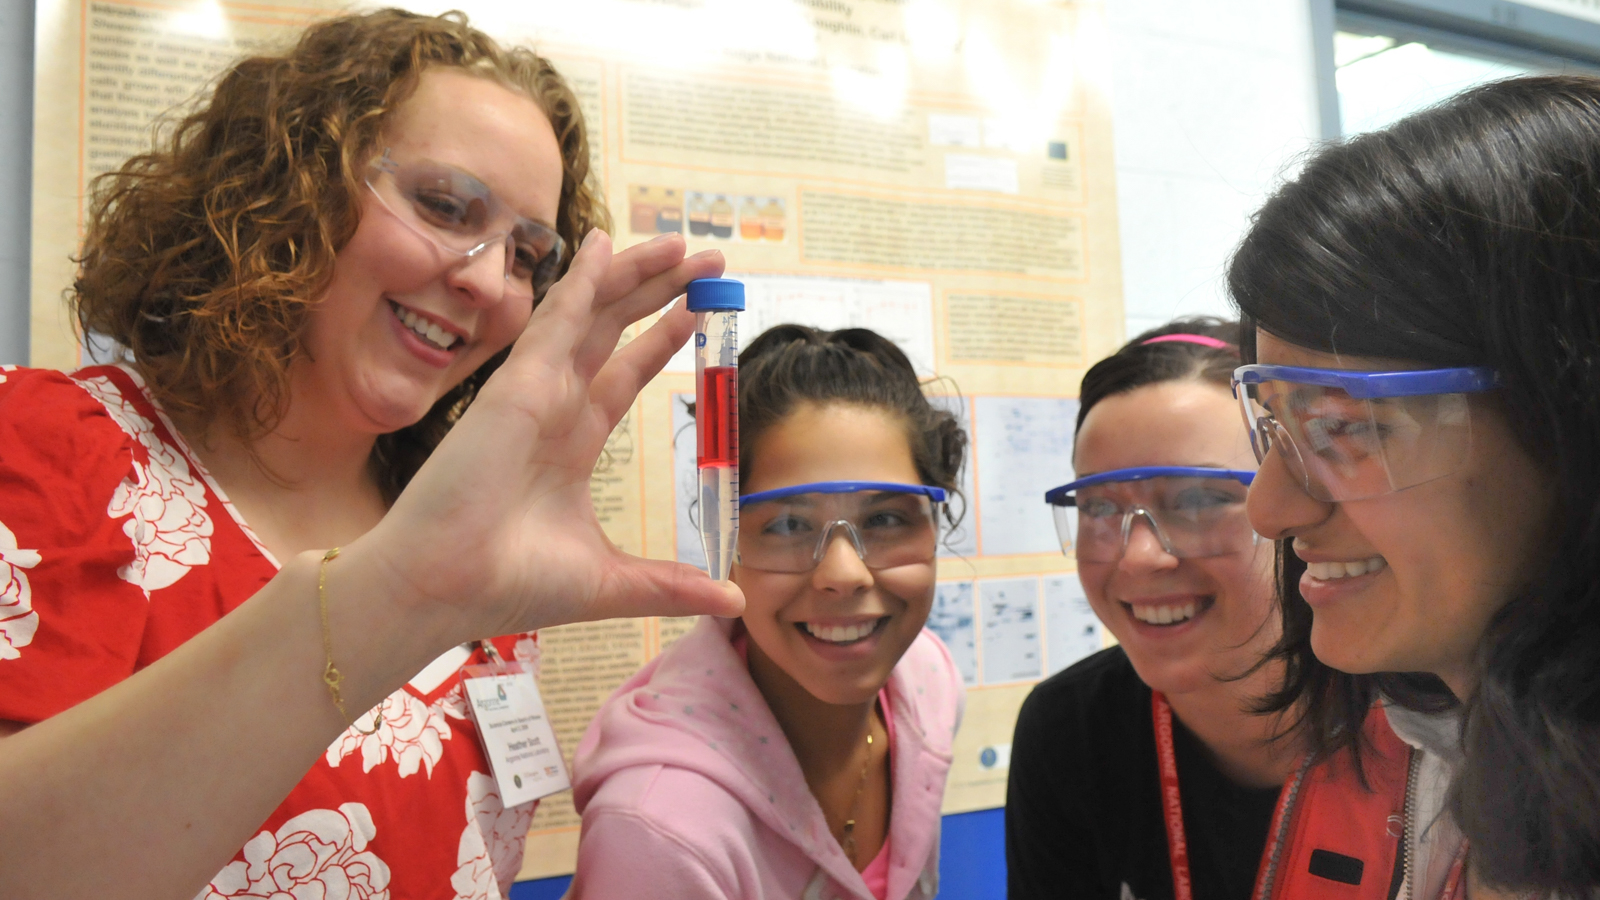 From left: Teacher Heather Scott and students Stephanie Lamas, Dana Bielinski and Smriti Marwaha examine a test tube at Science Careers in Search of Women.